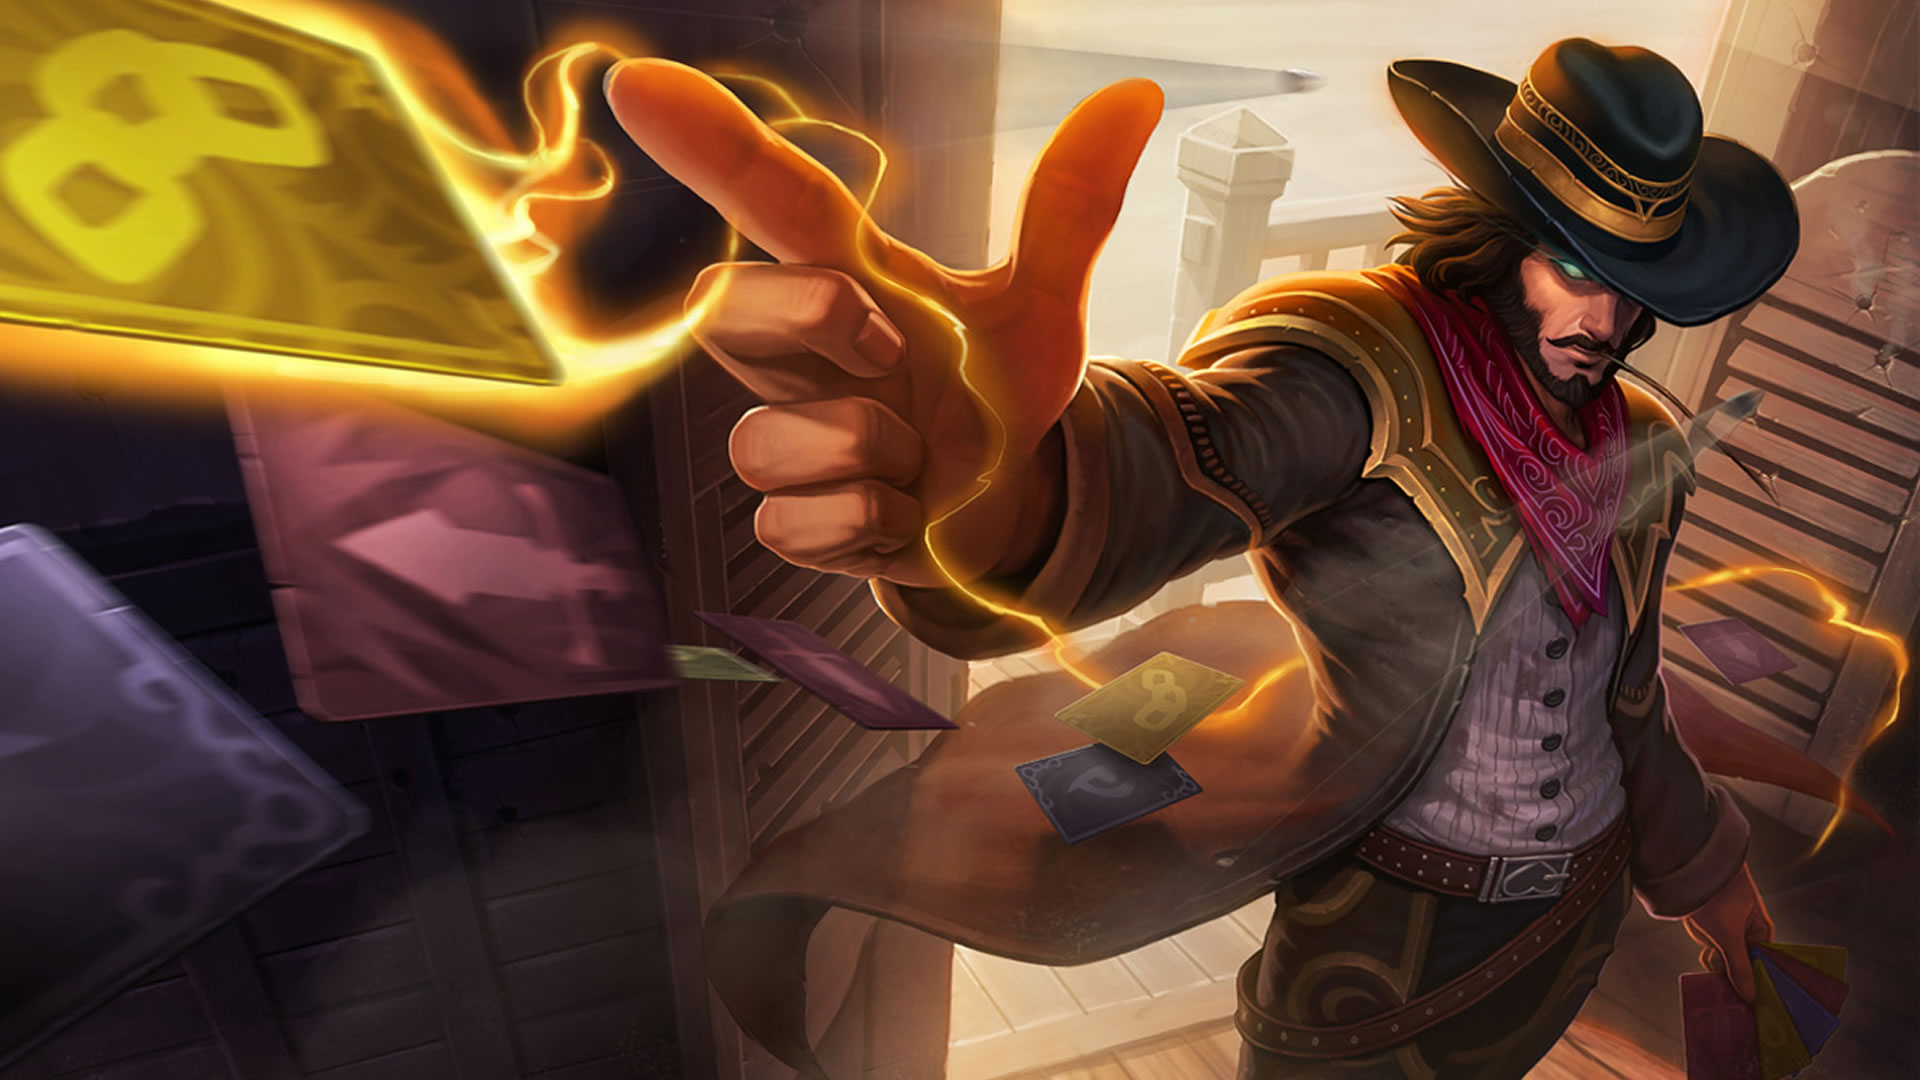 League of legends full hd wallpaper and background image video game league of legends twisted fate league of legends wallpaper voltagebd Gallery